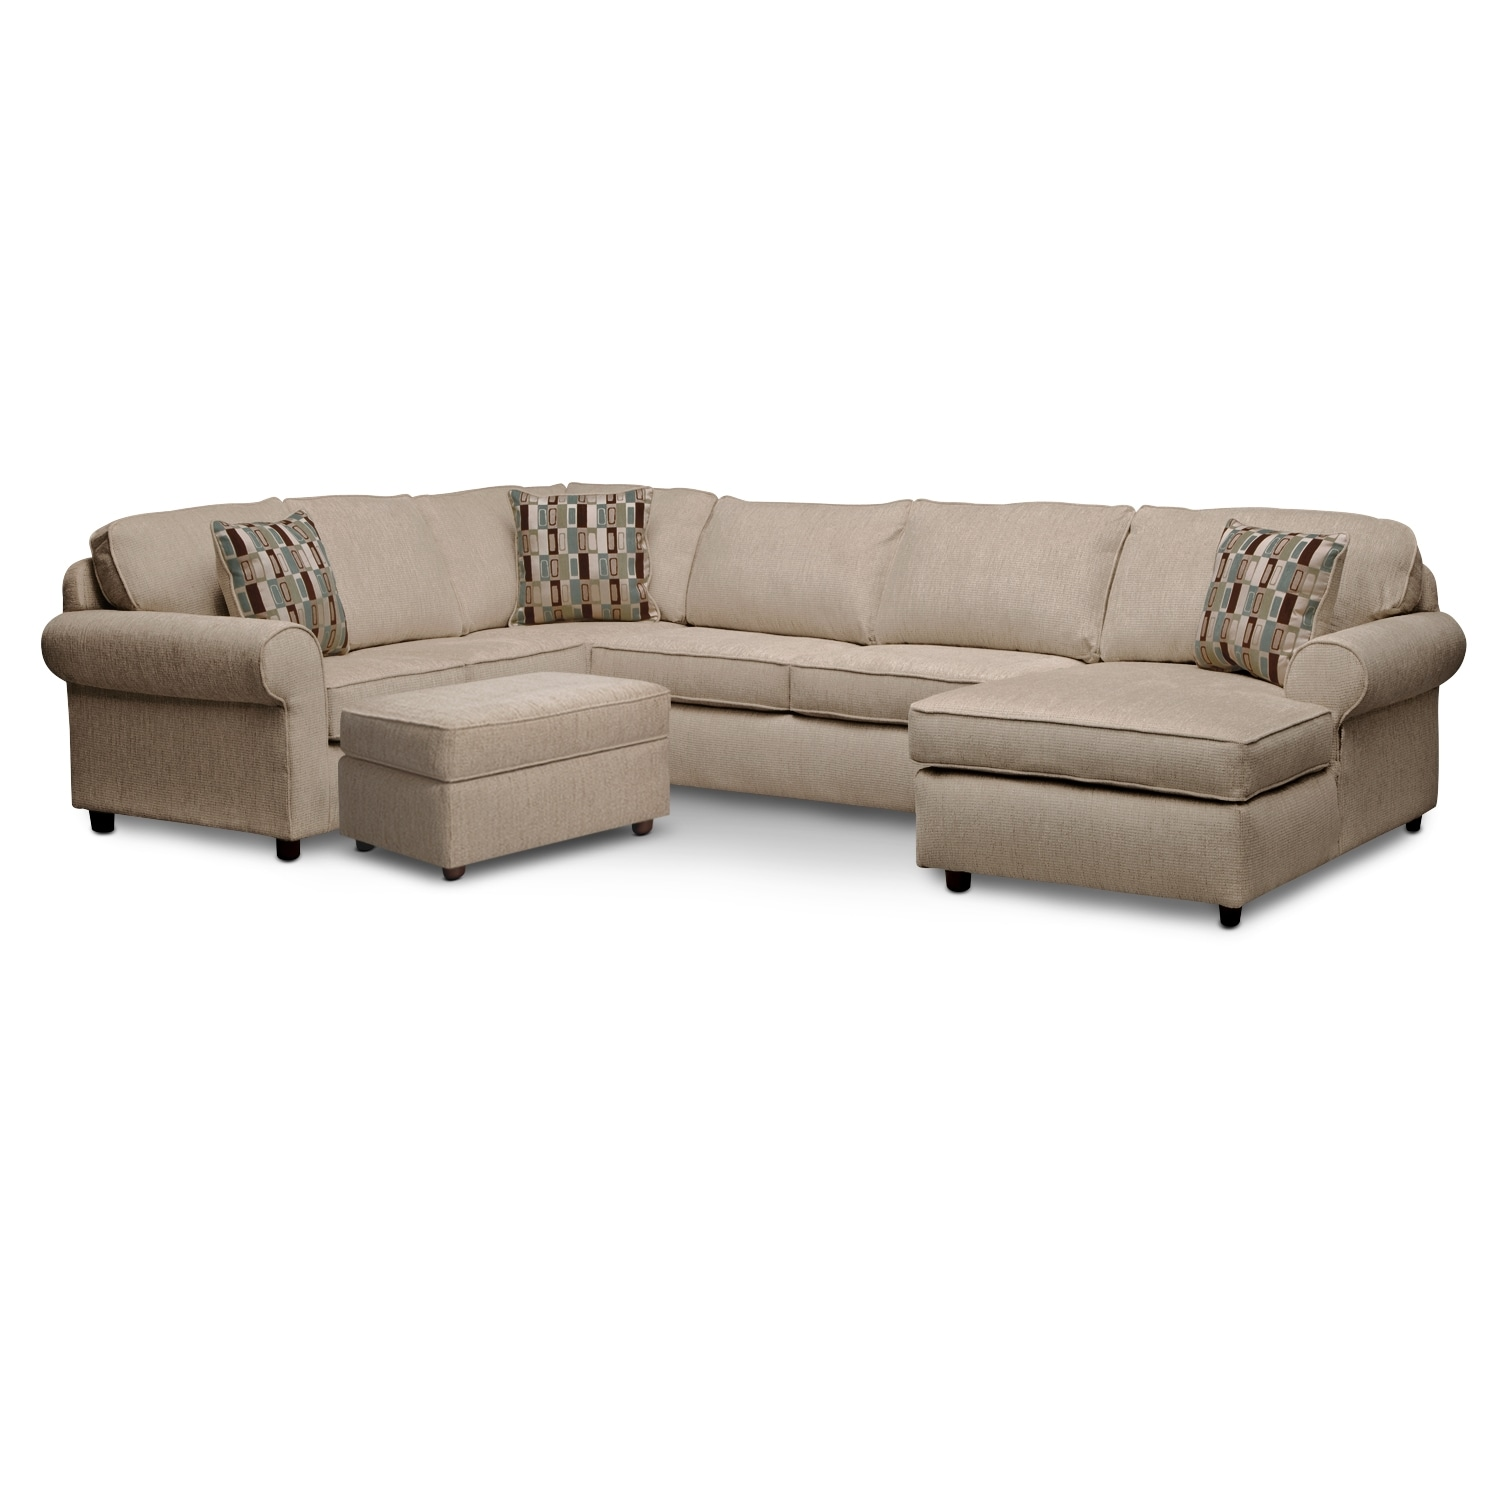 [Monarch II 3 Pc. Sectional and Ottoman]